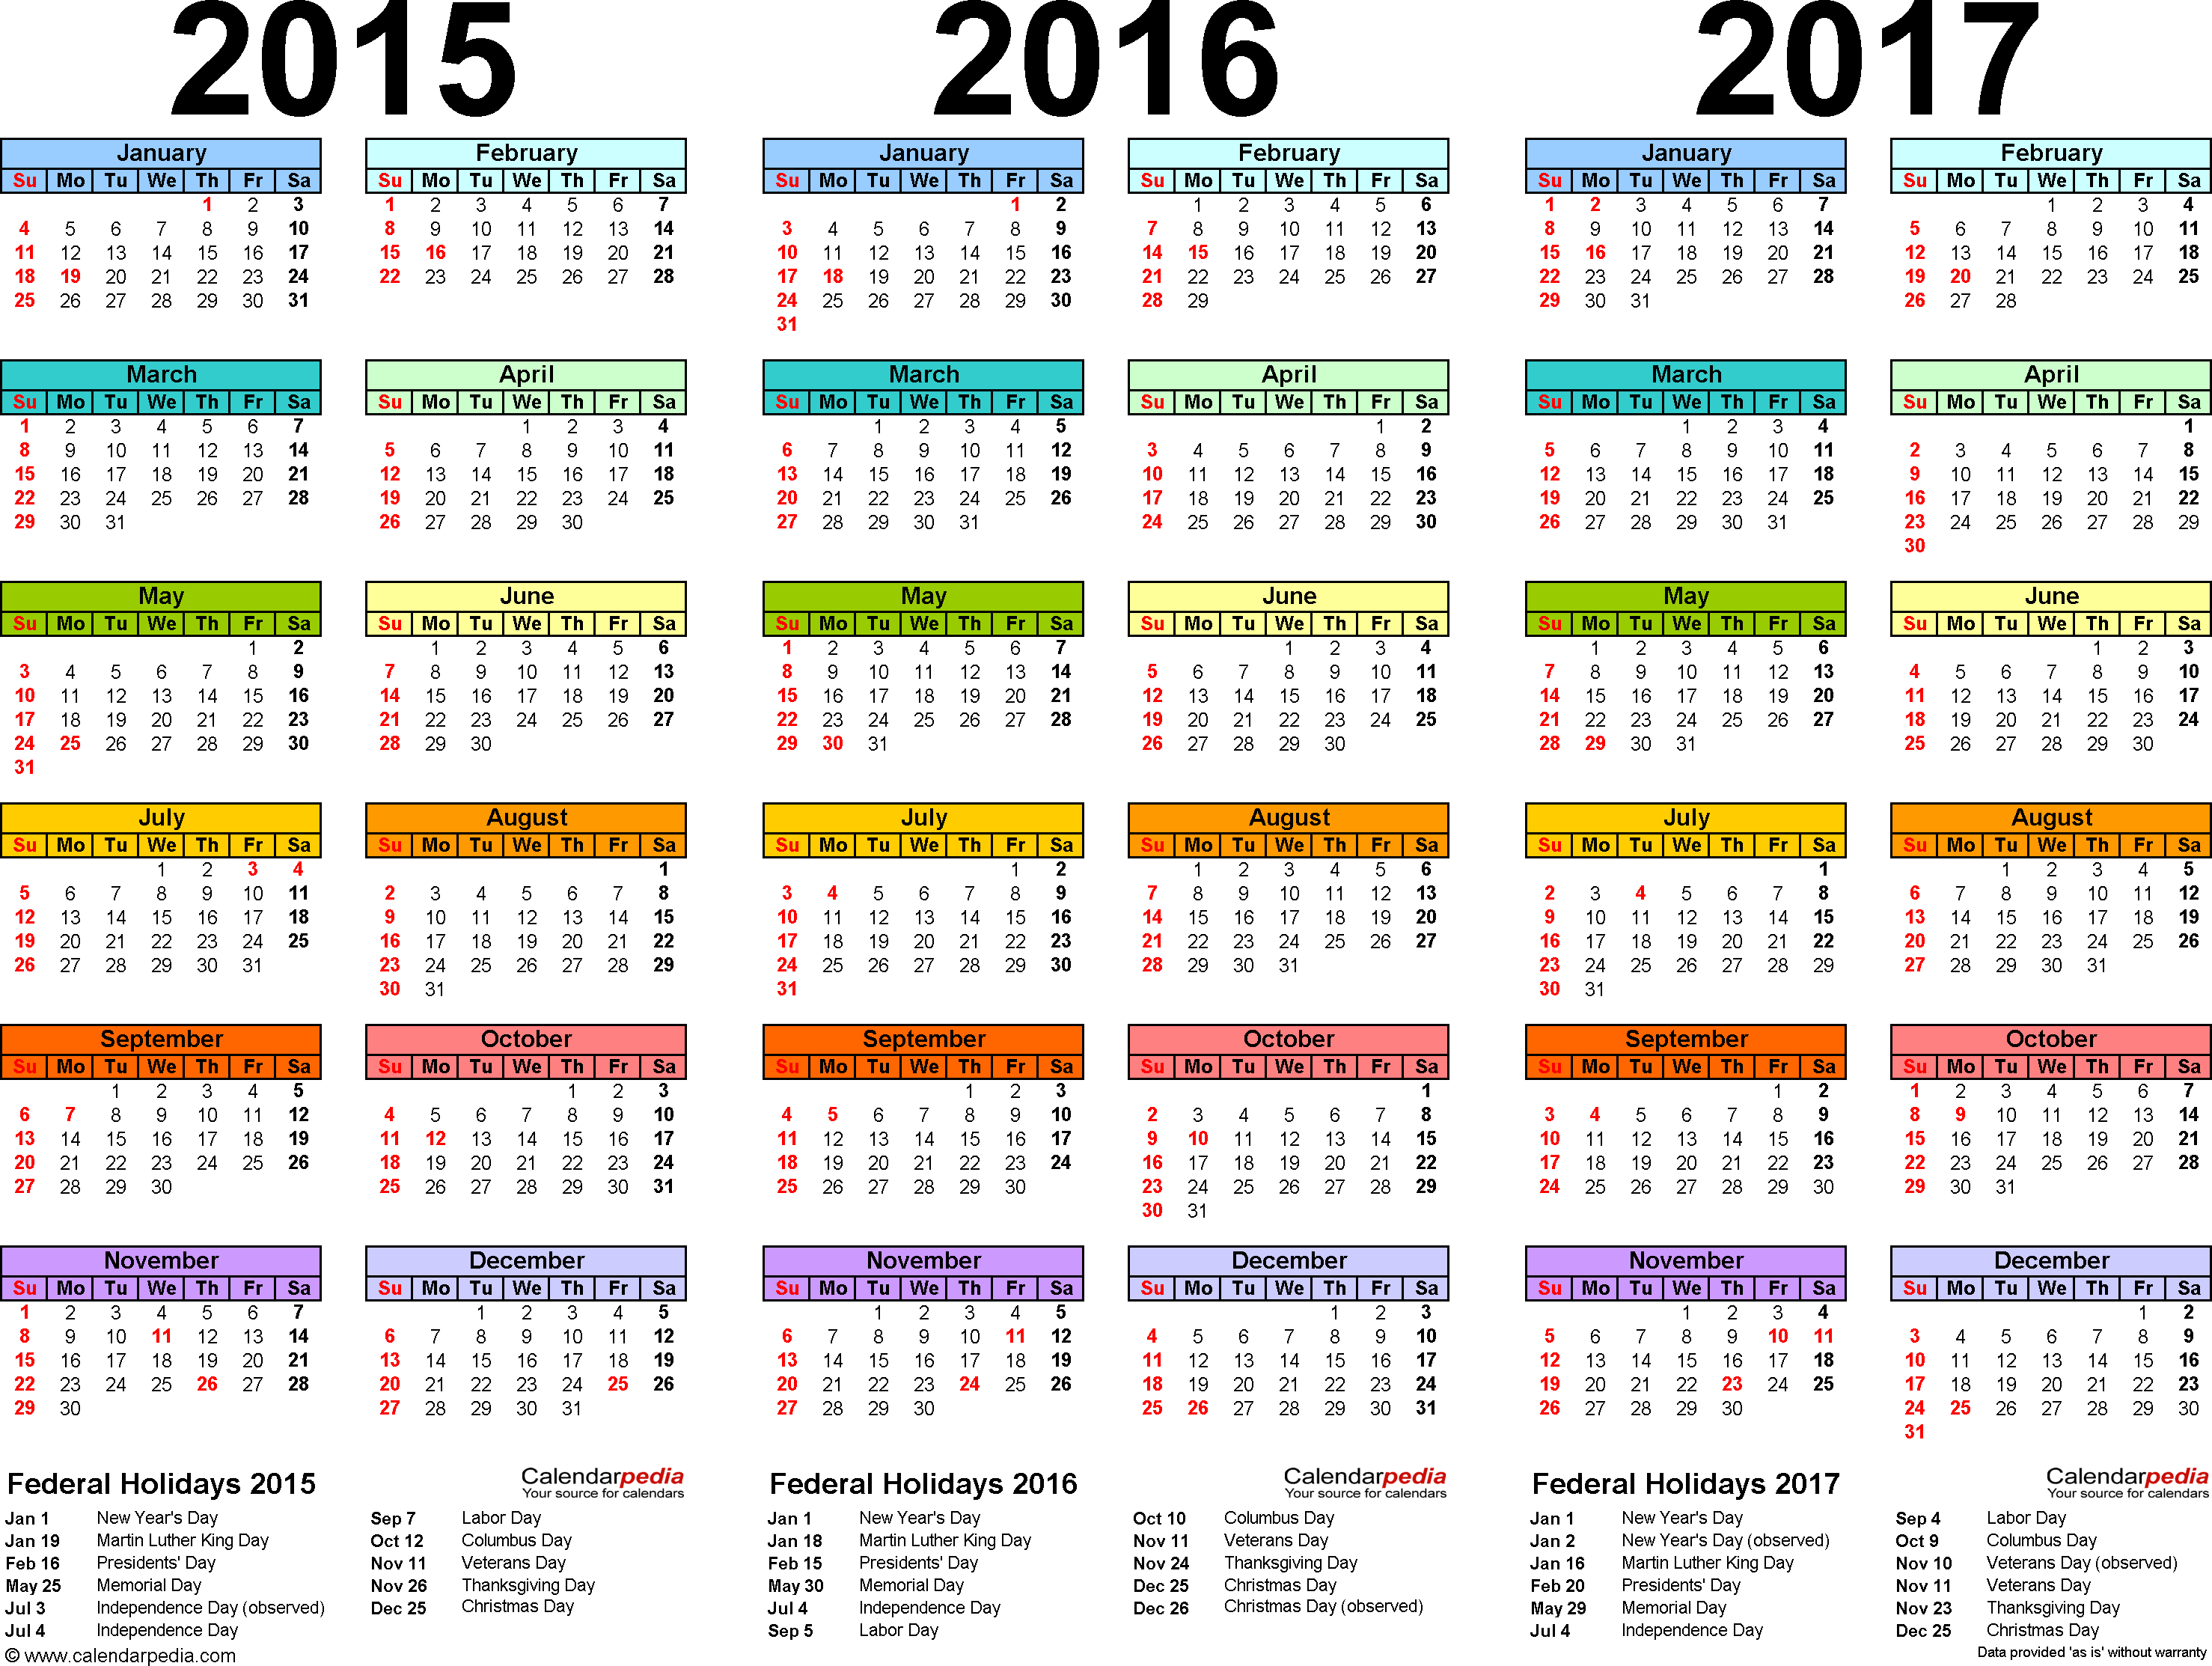 Template 1: Microsoft Word template for three year calendar 2015-2017 (landscape orientation, 1 page, in color)